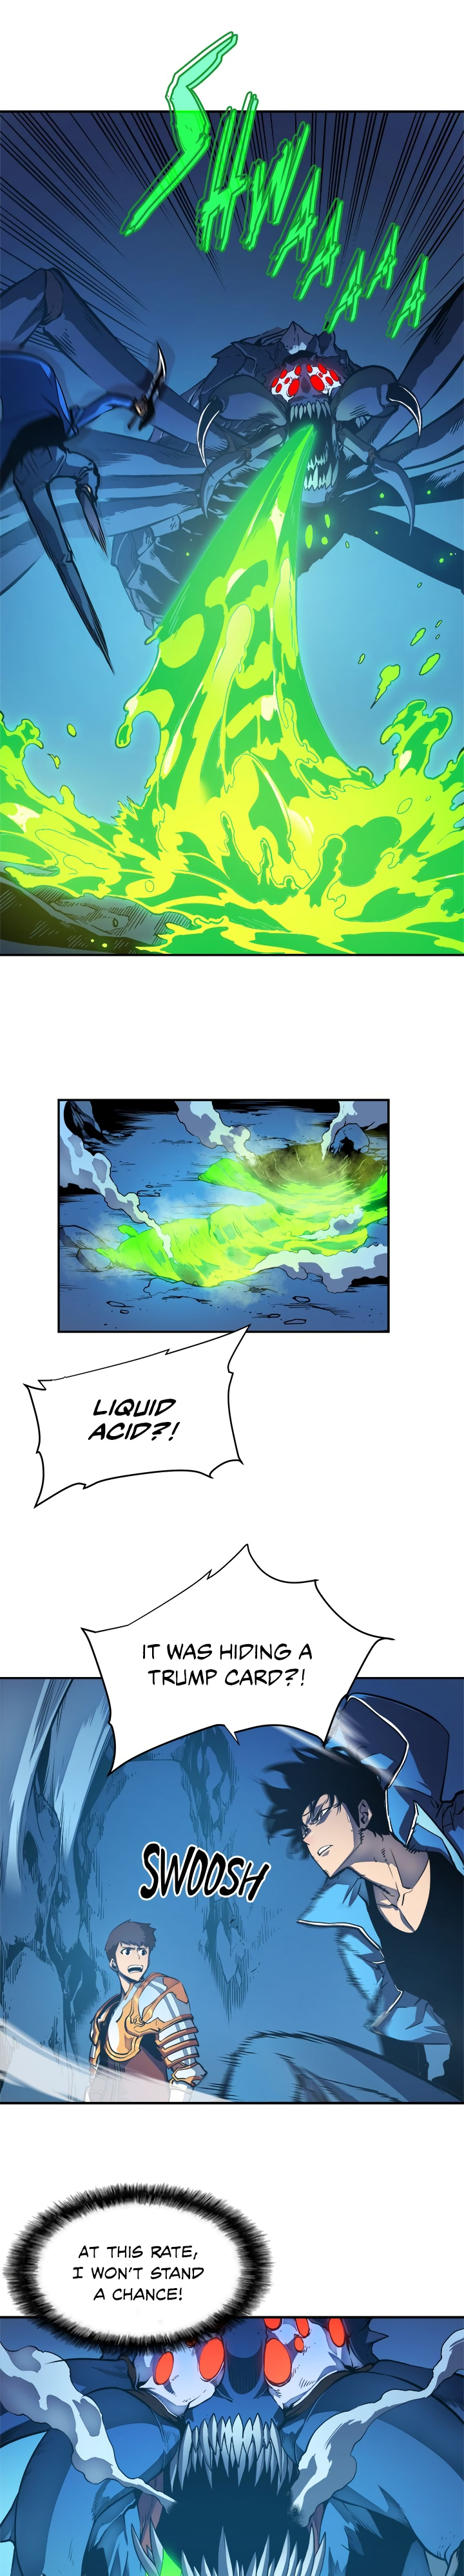 Solo Leveling, Chapter 22 image 014